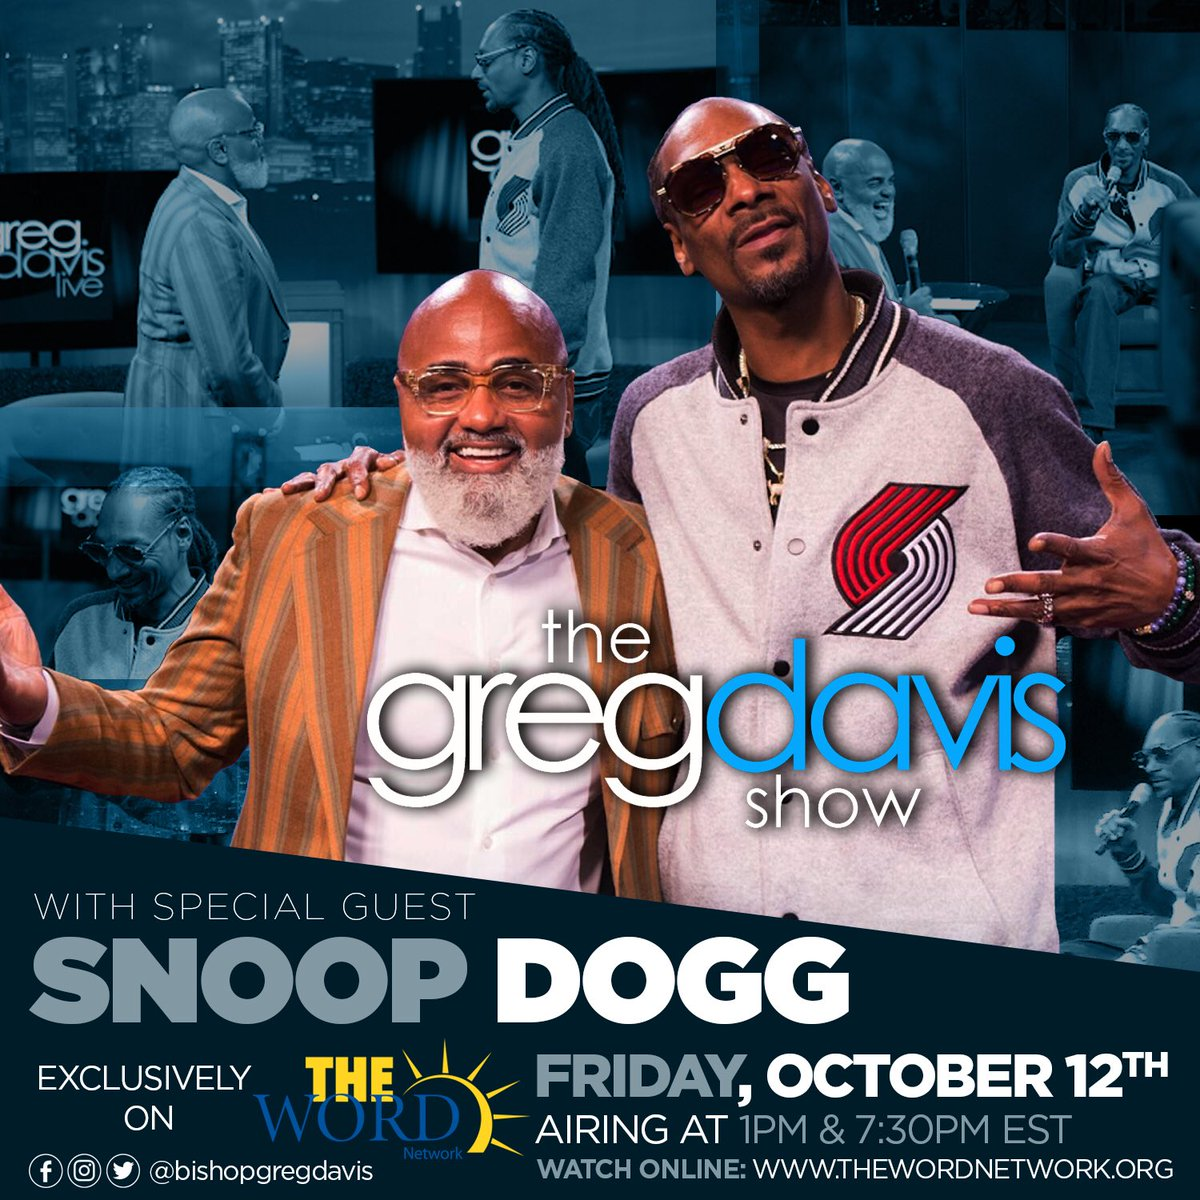 RT @Joy105com: Don't miss @Bishopgregdavis tonight on @thewordnetwork a real conversation w/ @SnoopDogg https://t.co/wklIJO8fcg